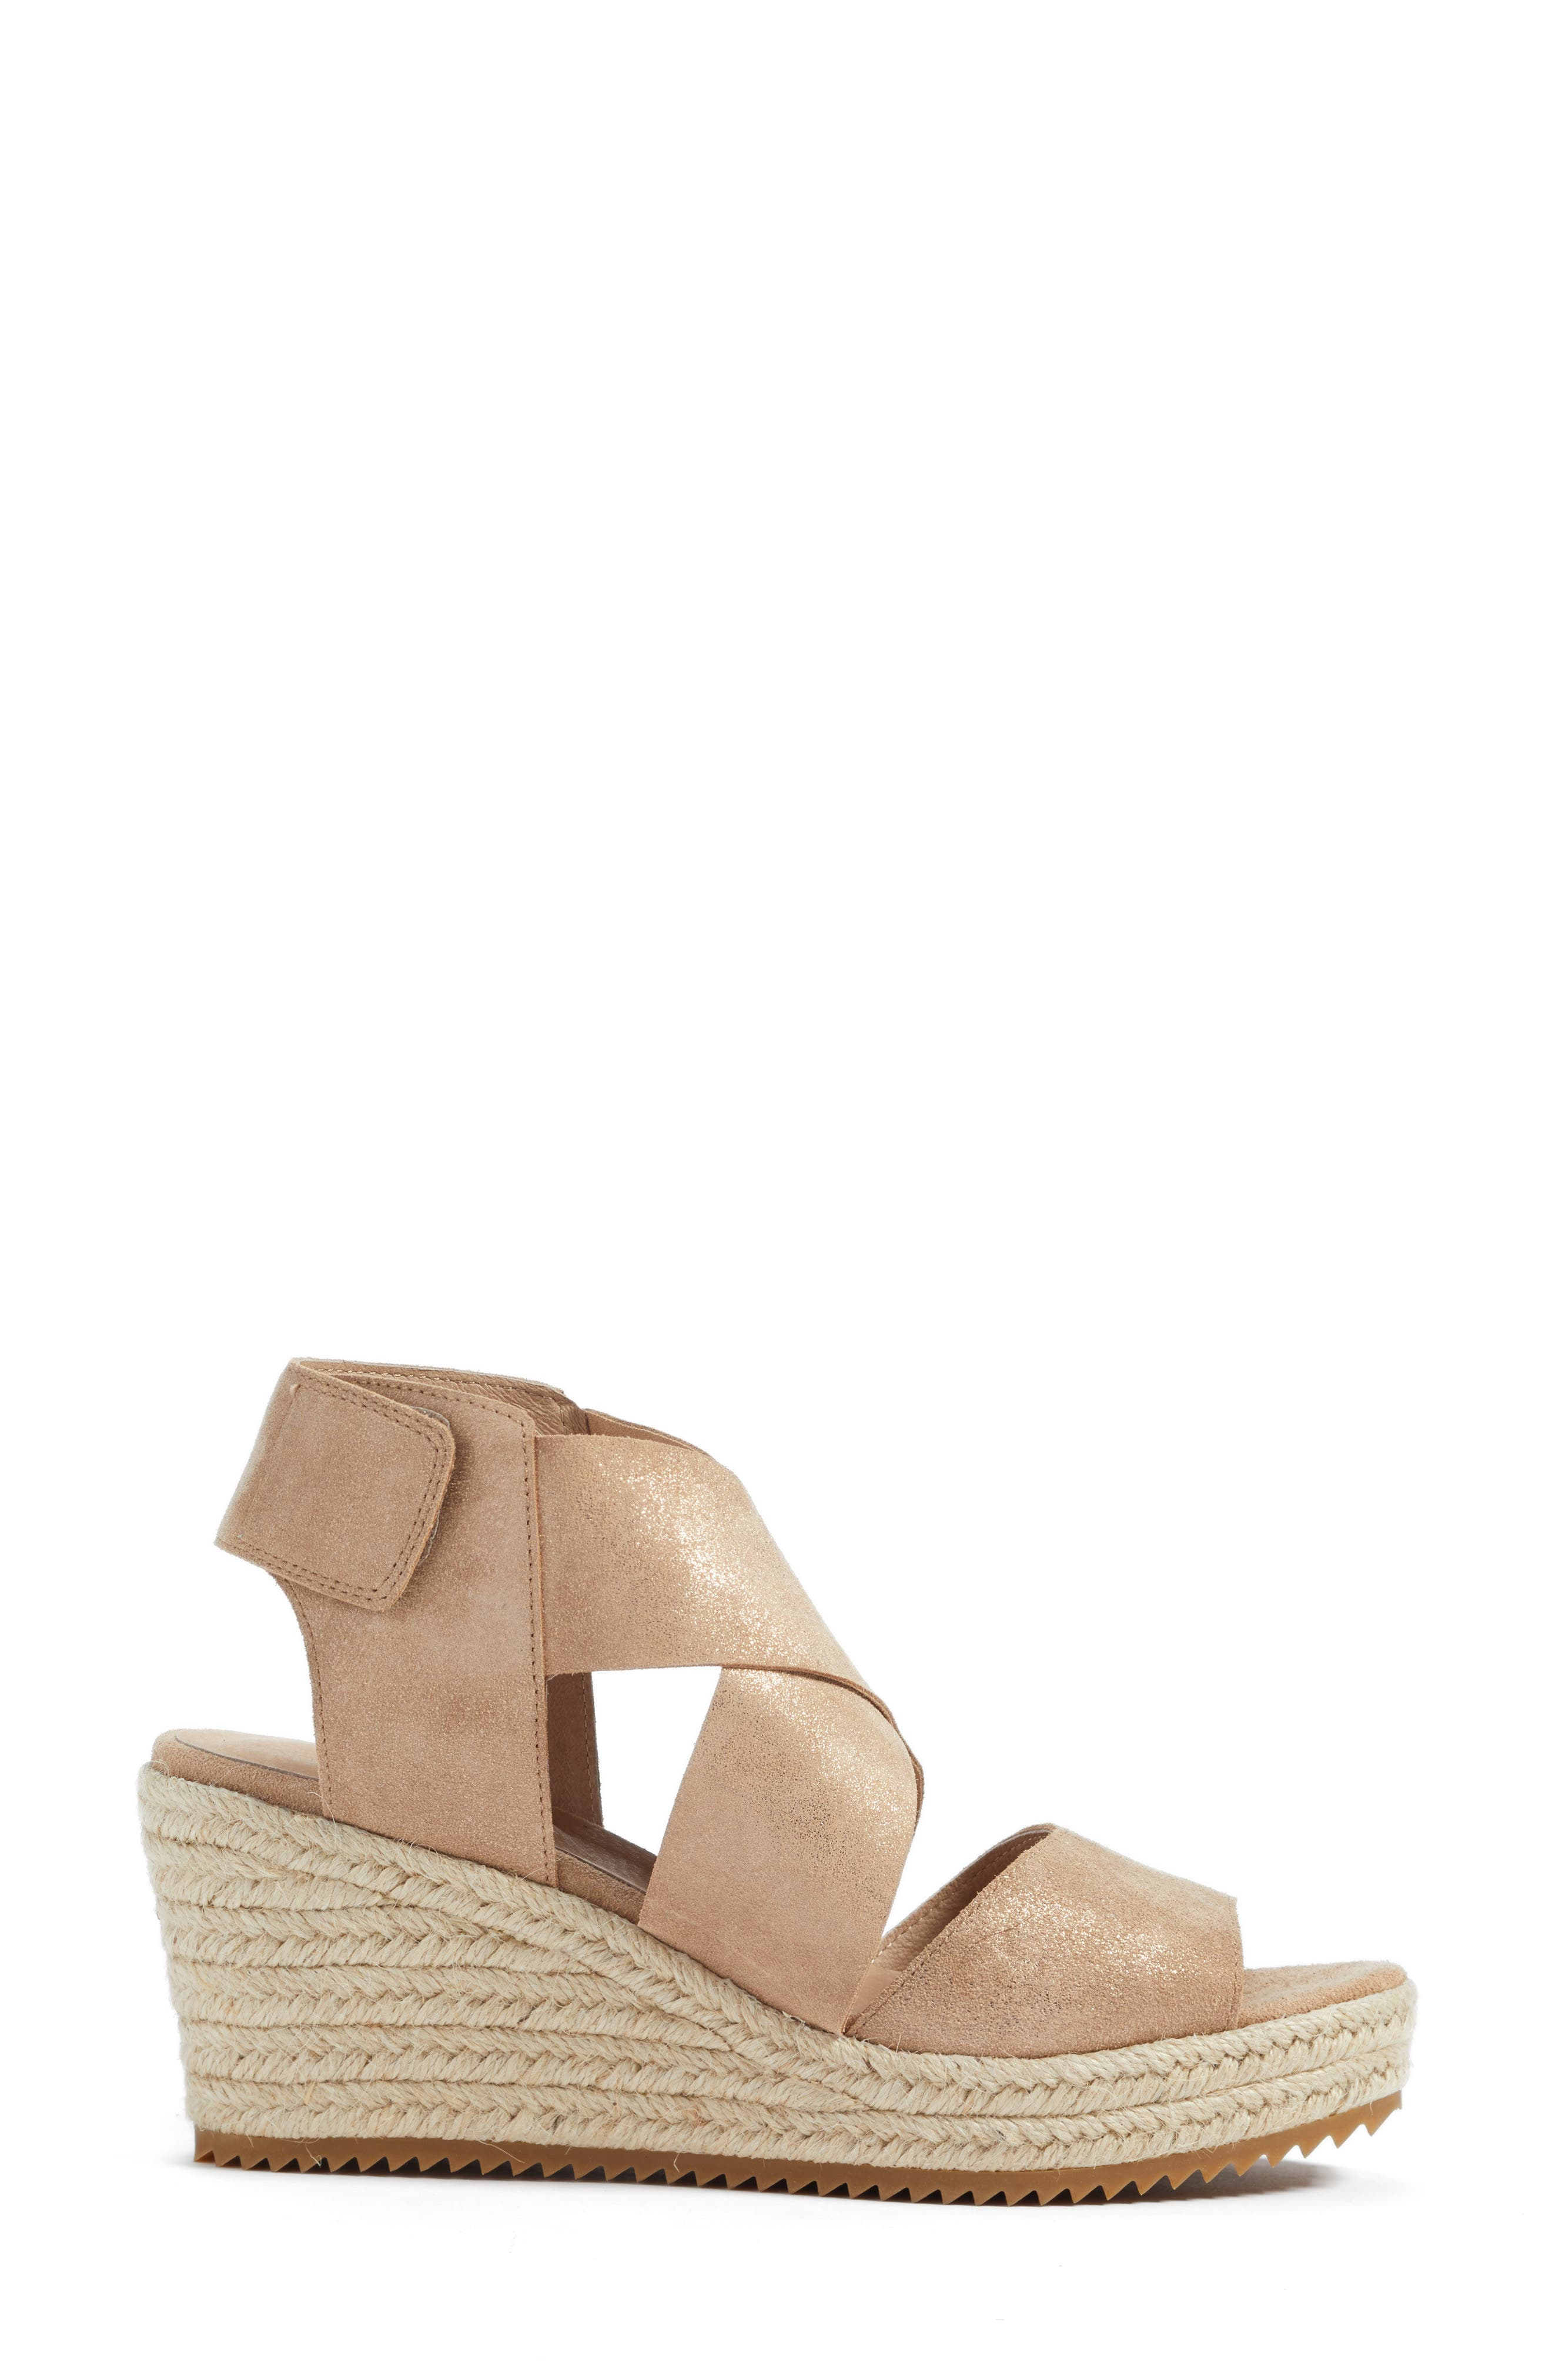 'Willow' Espadrille Wedge Sandal,                             Alternate thumbnail 3, color,                             LIGHT GOLD STARRY LEATHER